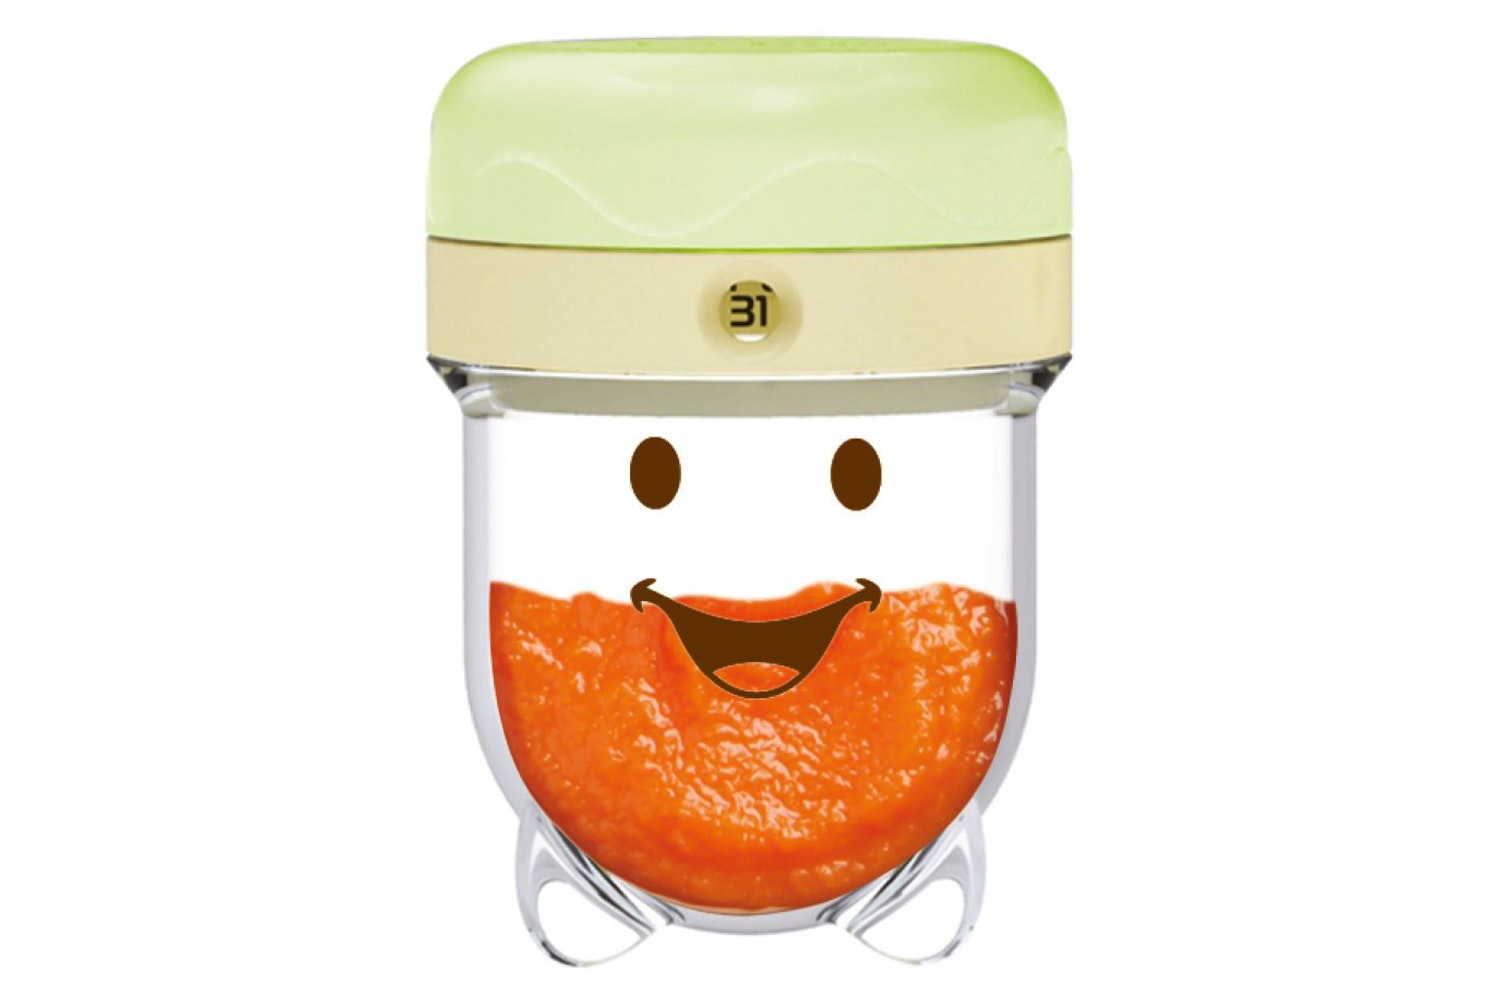 Nutribullet Baby Food Processor | NBLBY